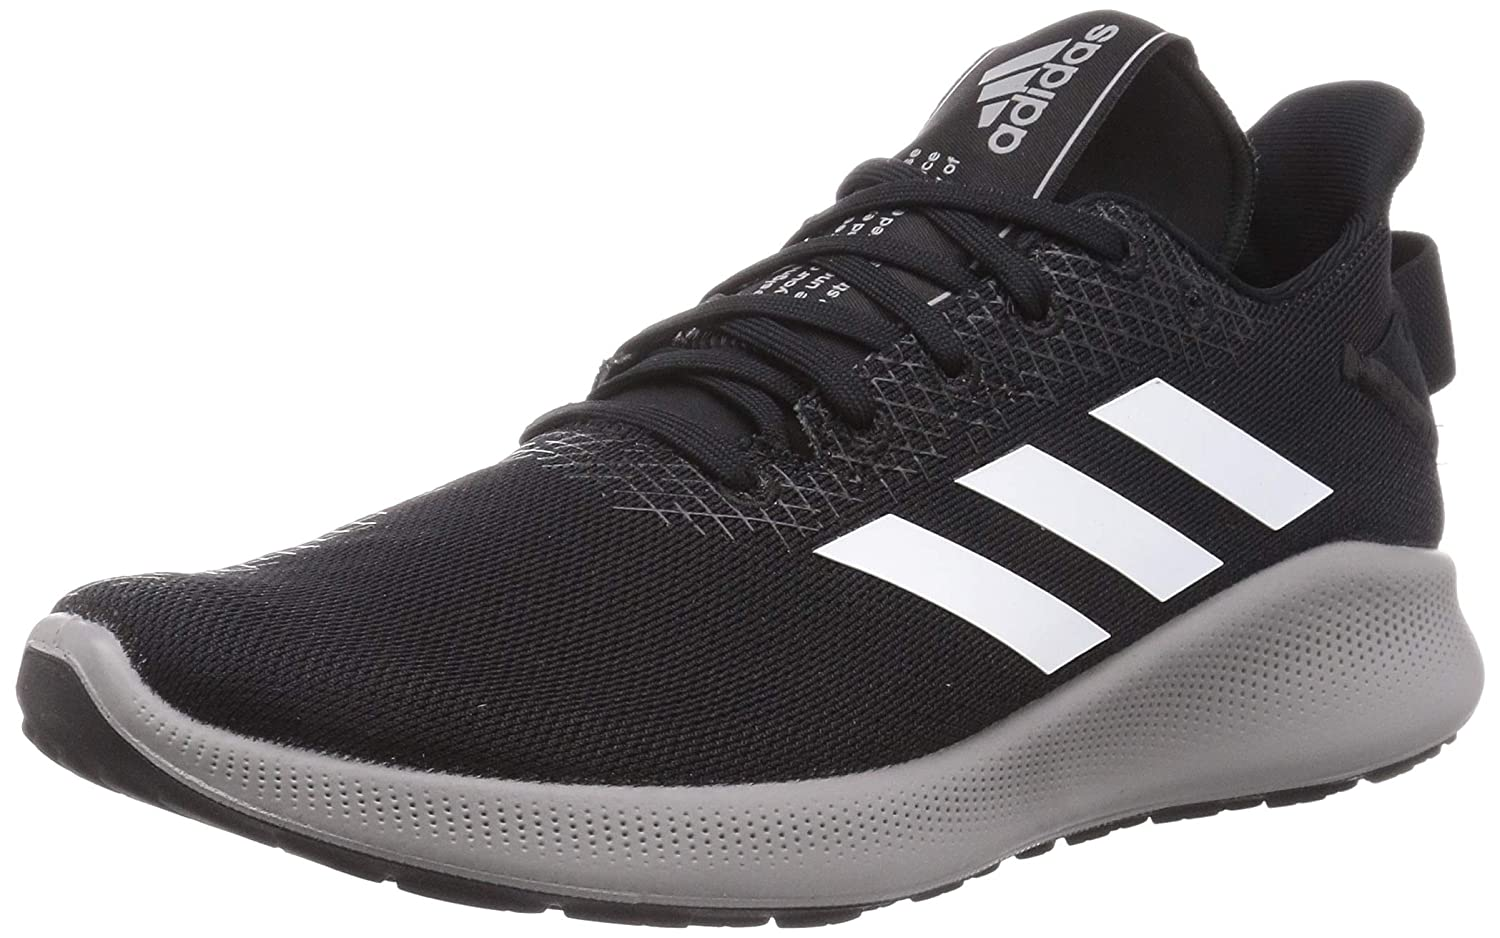 Street M Running Shoes at Amazon.in